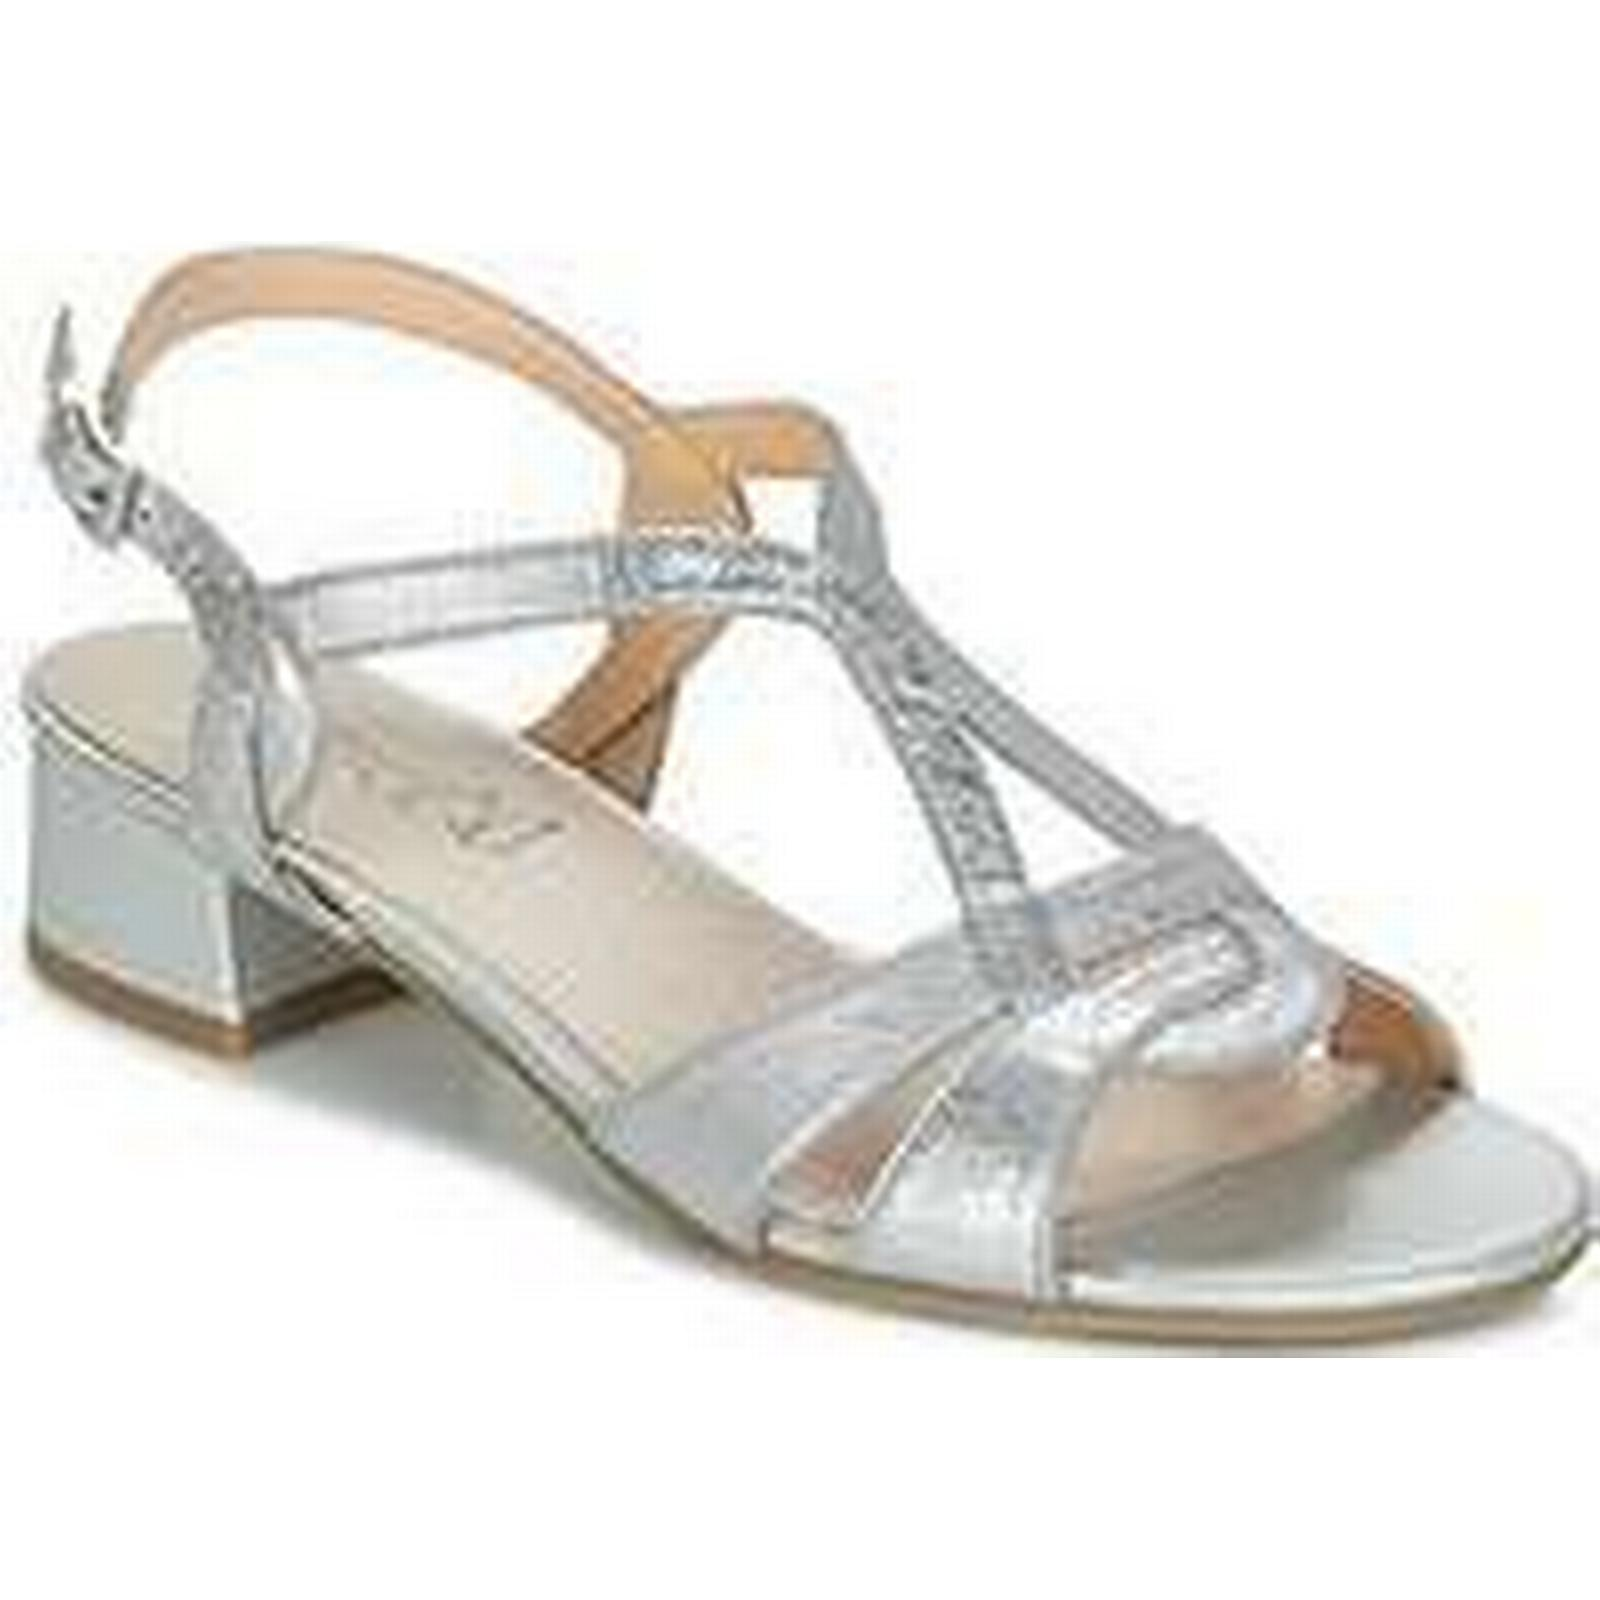 Spartoo.co.uk in Caprice SATIBO women's Sandals in Spartoo.co.uk Silver 22aa6a